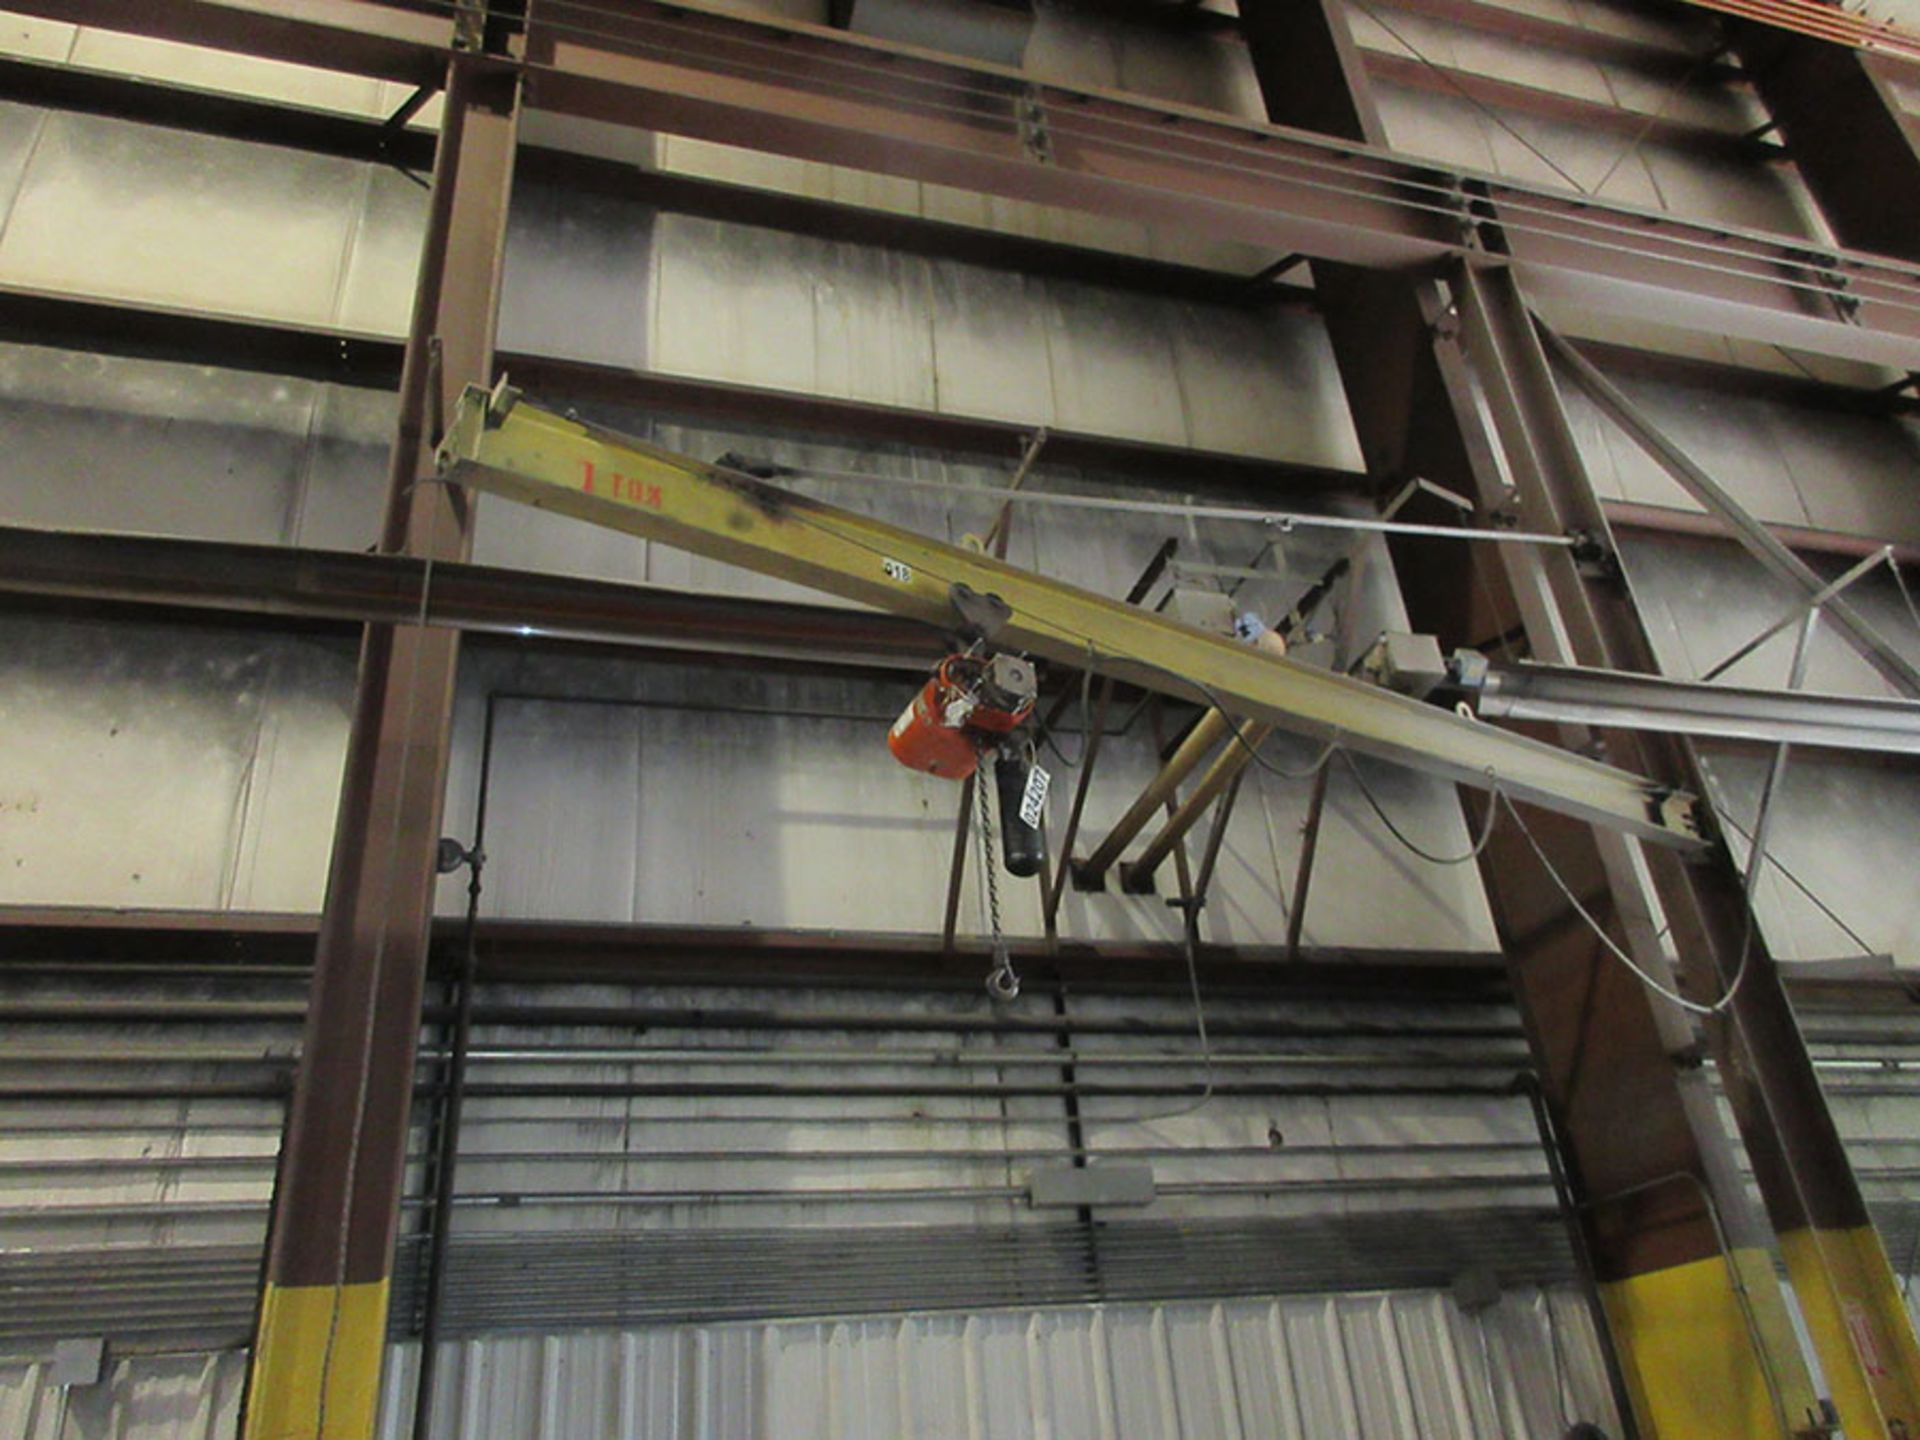 Lot 647 - 1-TON COLUMN MOUNT JIB CRANE WITH CM 1-TON HOIST